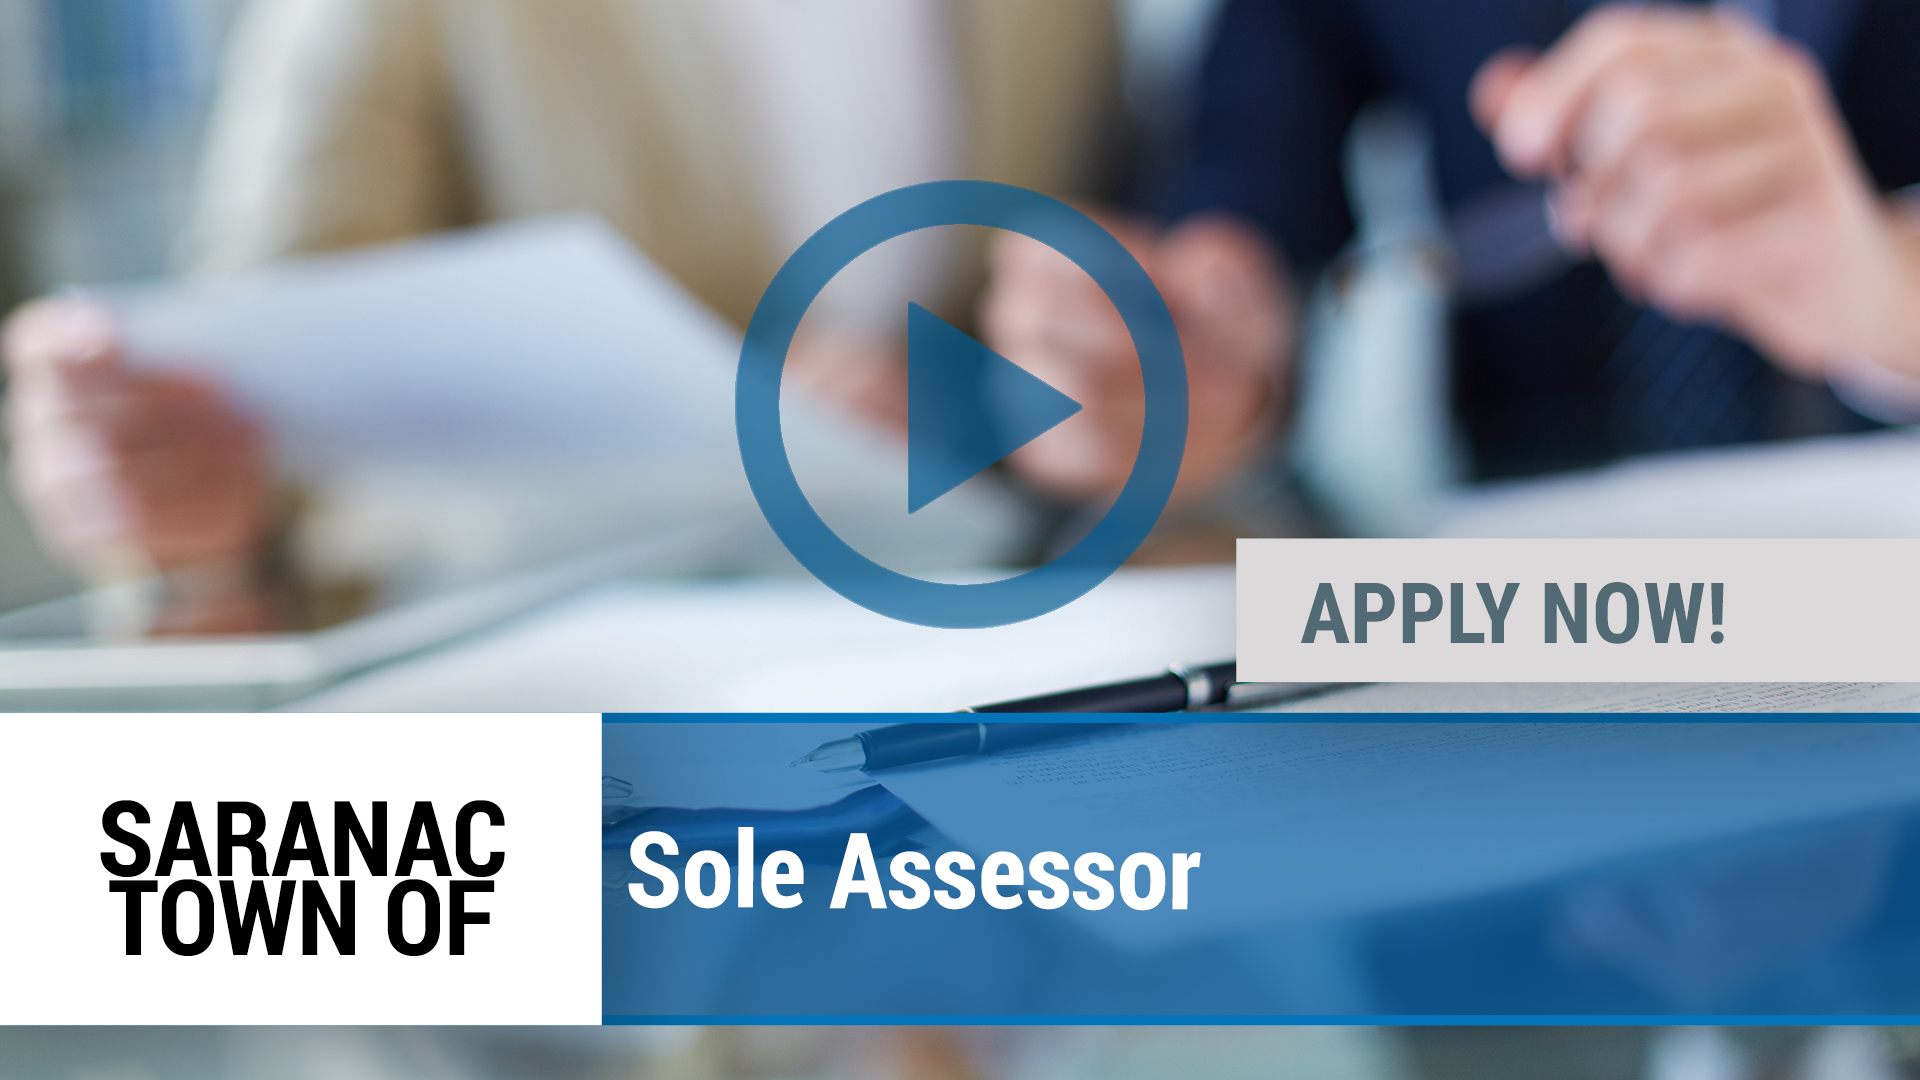 Watch our careers video for available job opening Sole Assessor in Saranac, NY